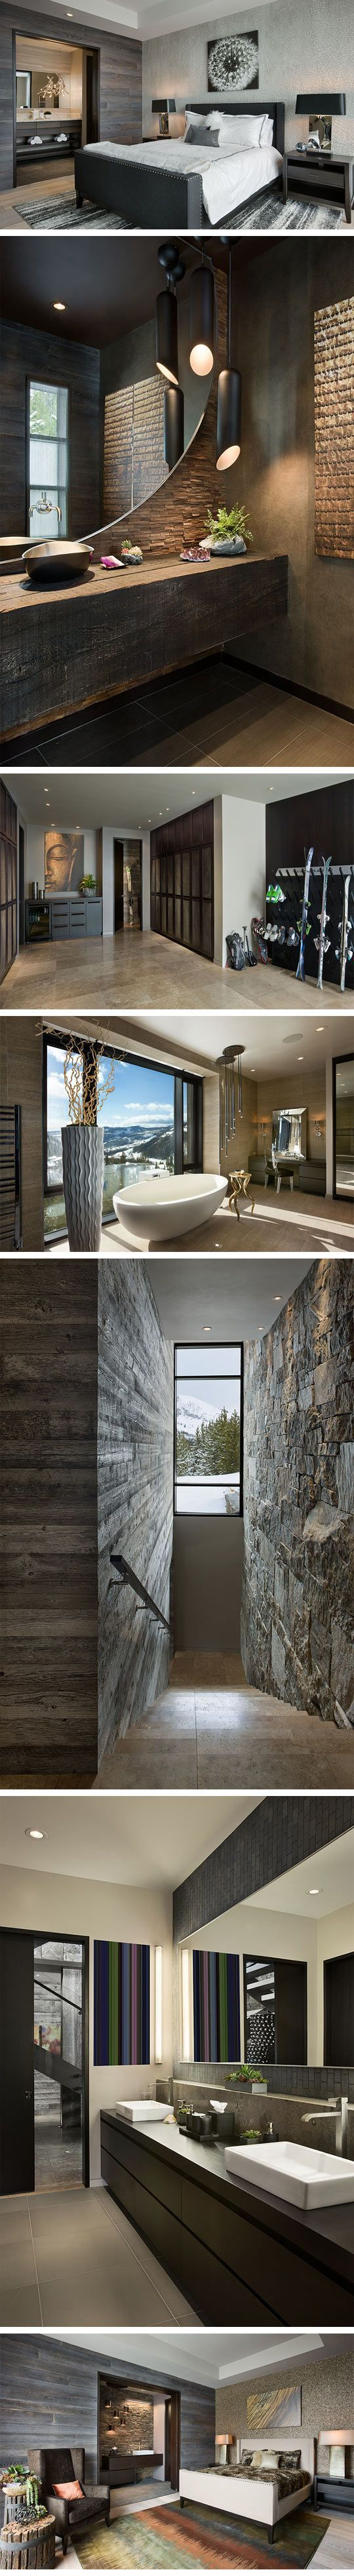 woodsHouse Wood, Cool Bathroom Ideas, Bedrooms Wood Interiors, Dreams House, Cool House, Beautiful Modern Bedrooms, Mountain Bedroom, Mountain House, Modern Houses Interior